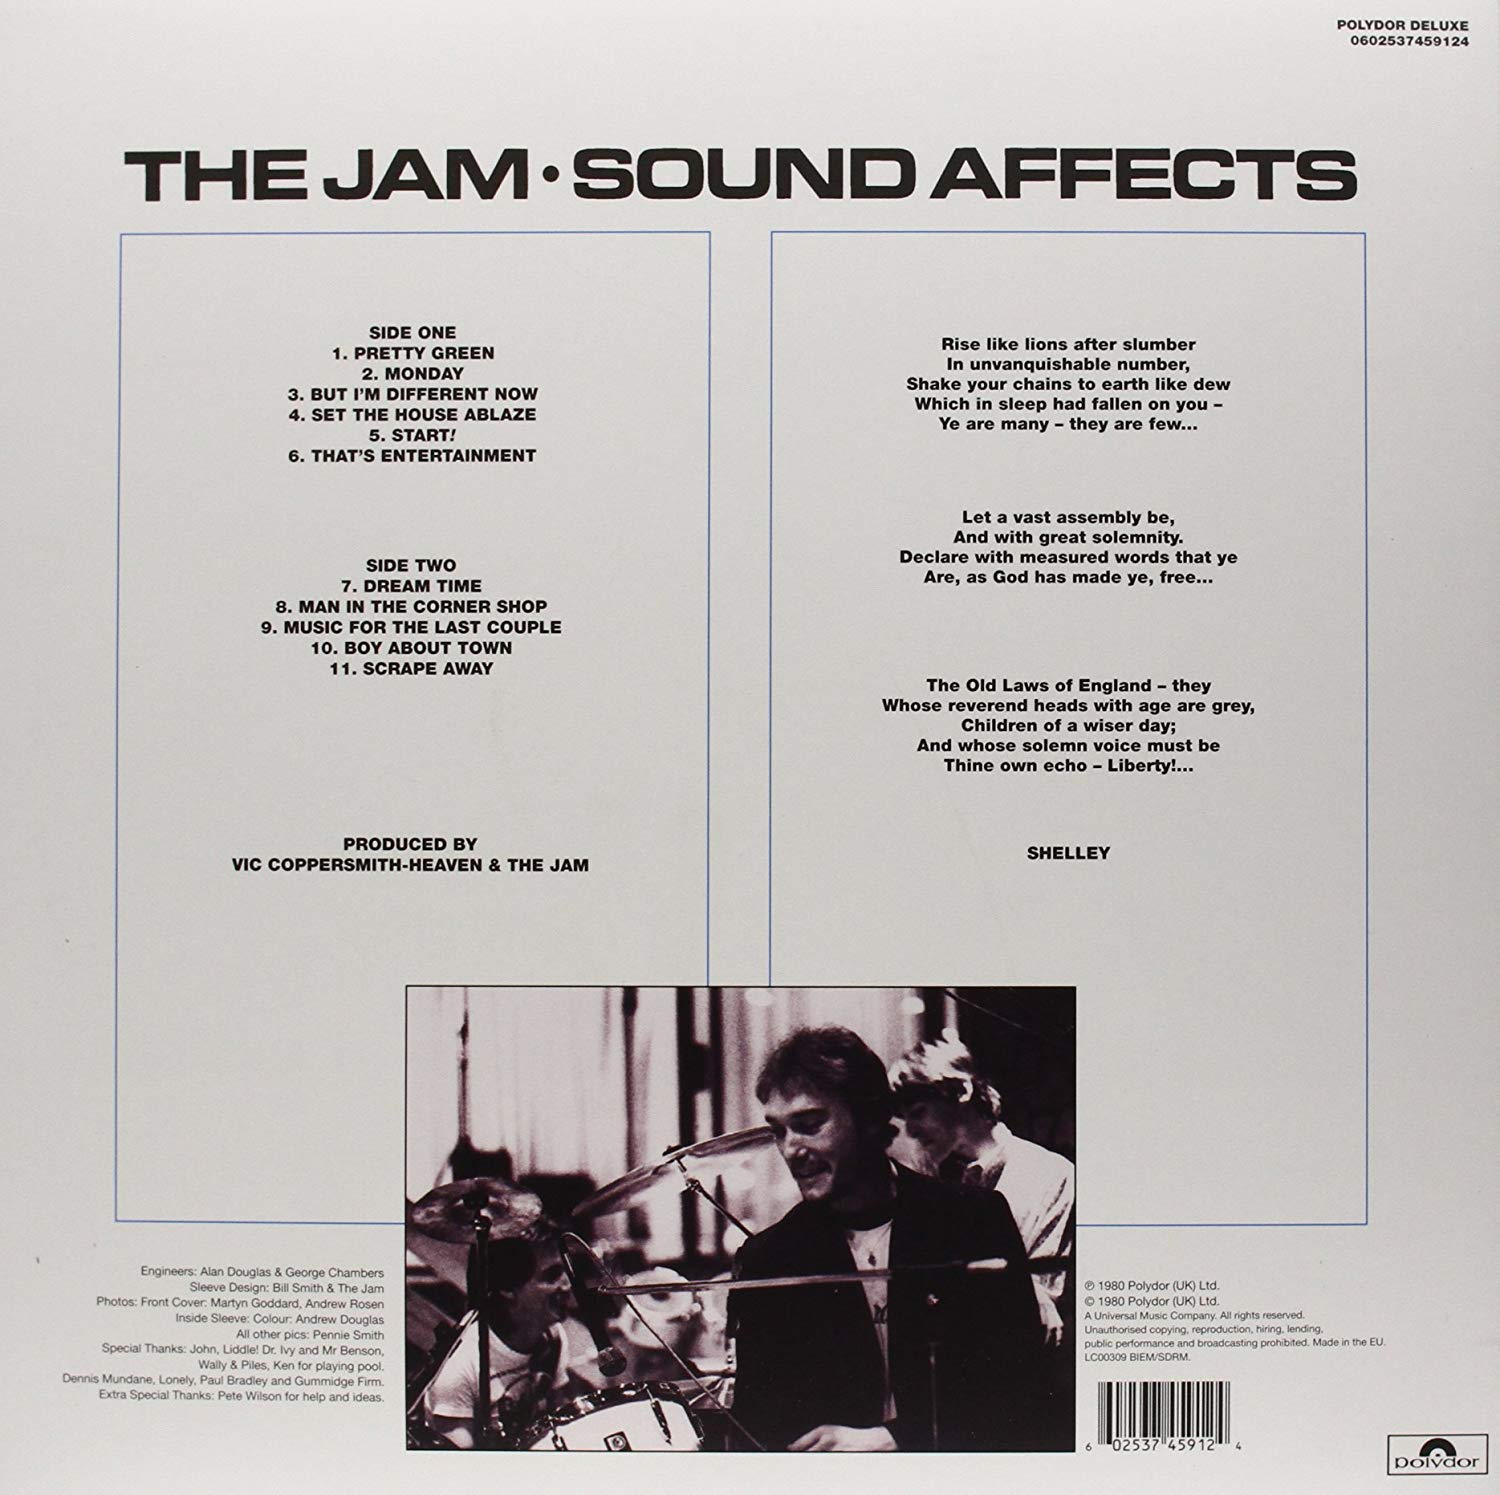 The Jam, Sound Affects album 1980. Back cover of record sleeve